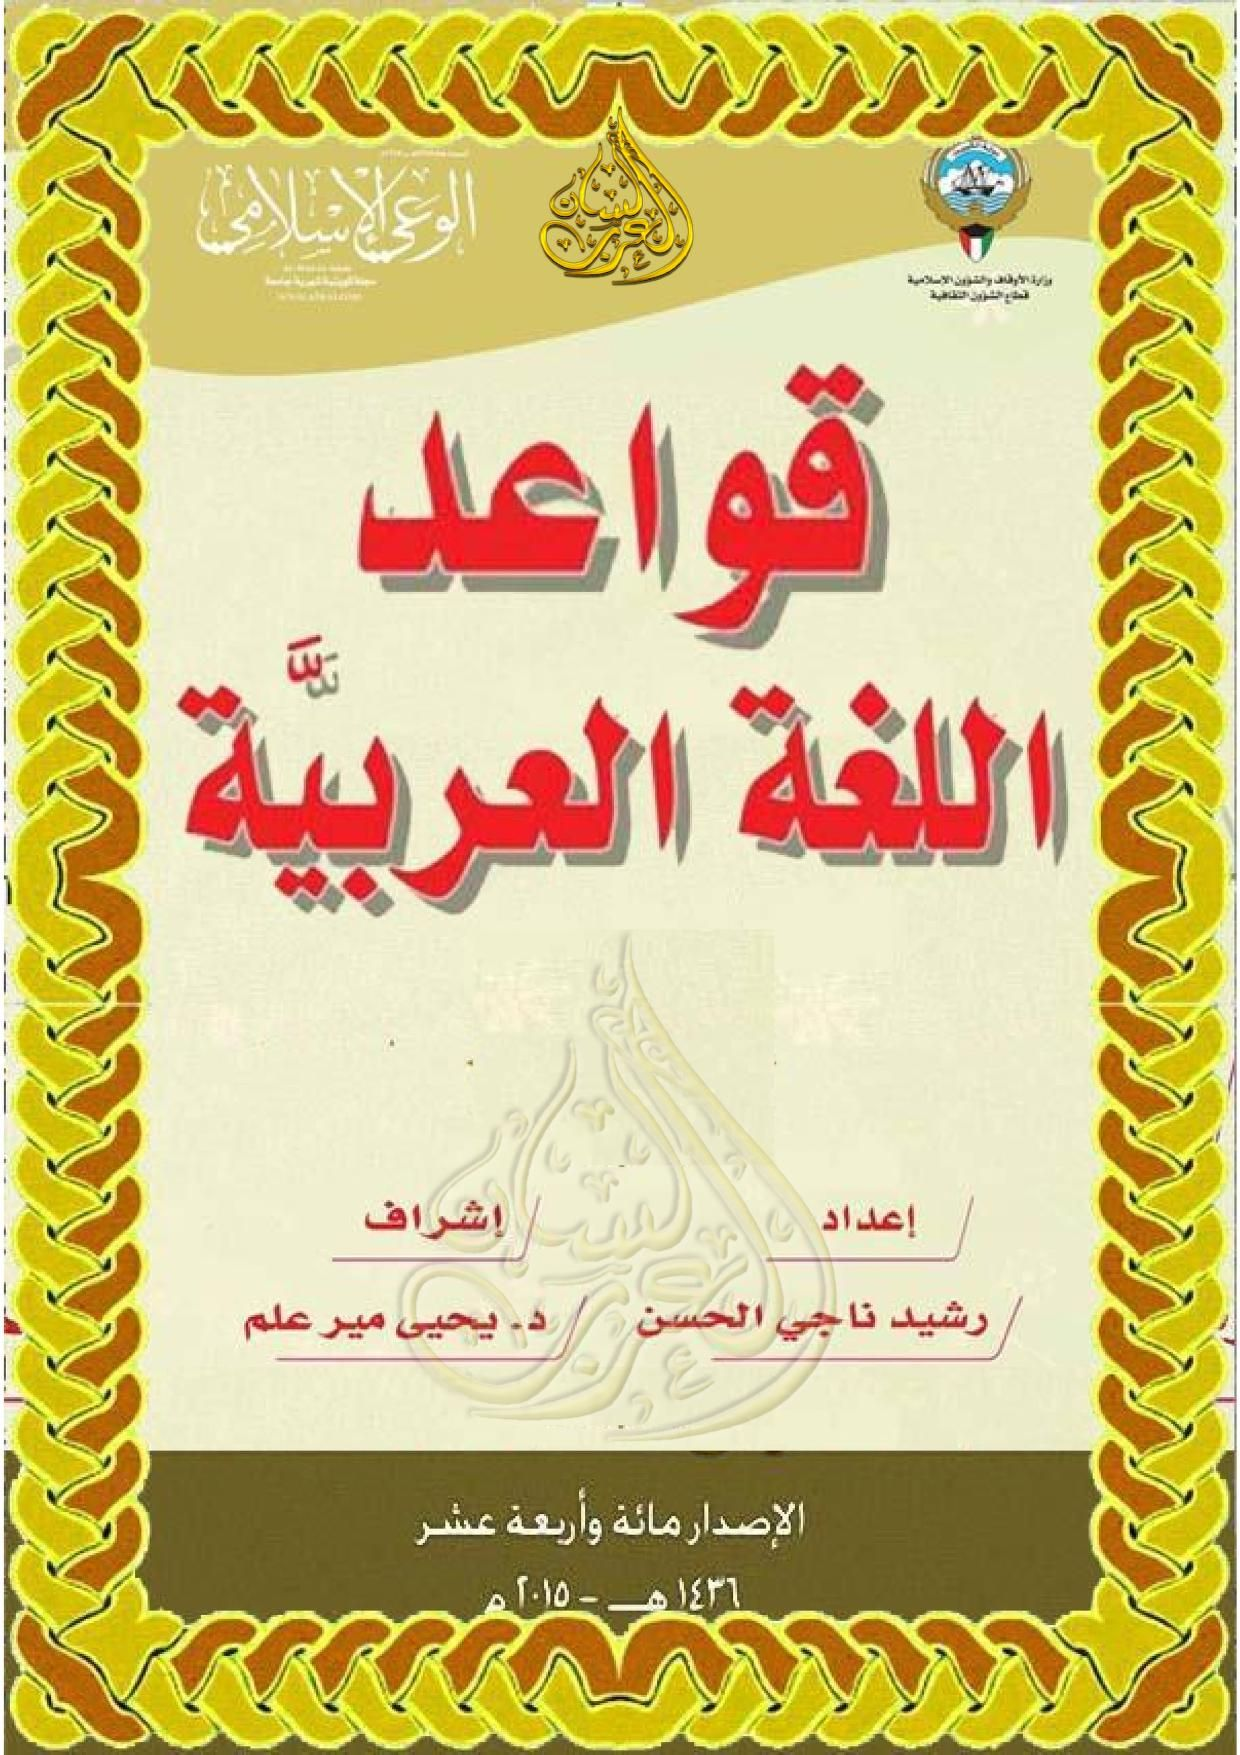 Lis Gd03 Free Download Borrow And Streaming Internet Archive In 2021 Learn Arabic Language Internet Archive Learning Arabic